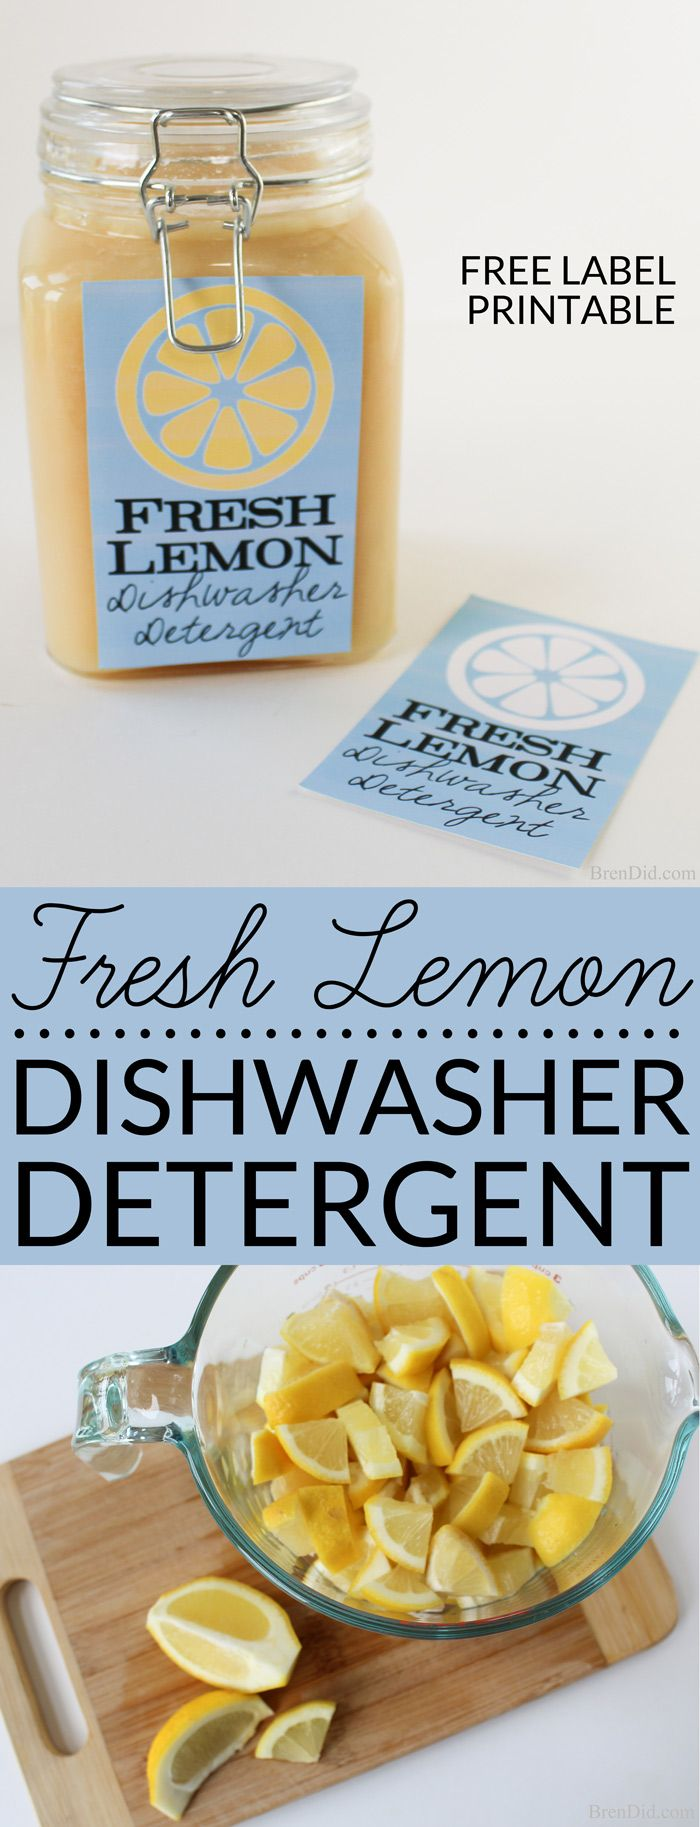 Love natural DIY products? Fresh Lemon Homemade Dishwasher Detergent uses real lemons, salt & vinegar to make liquid dishwasher detergent that cleans naturally. Learn about the recipe & its effectiveness.